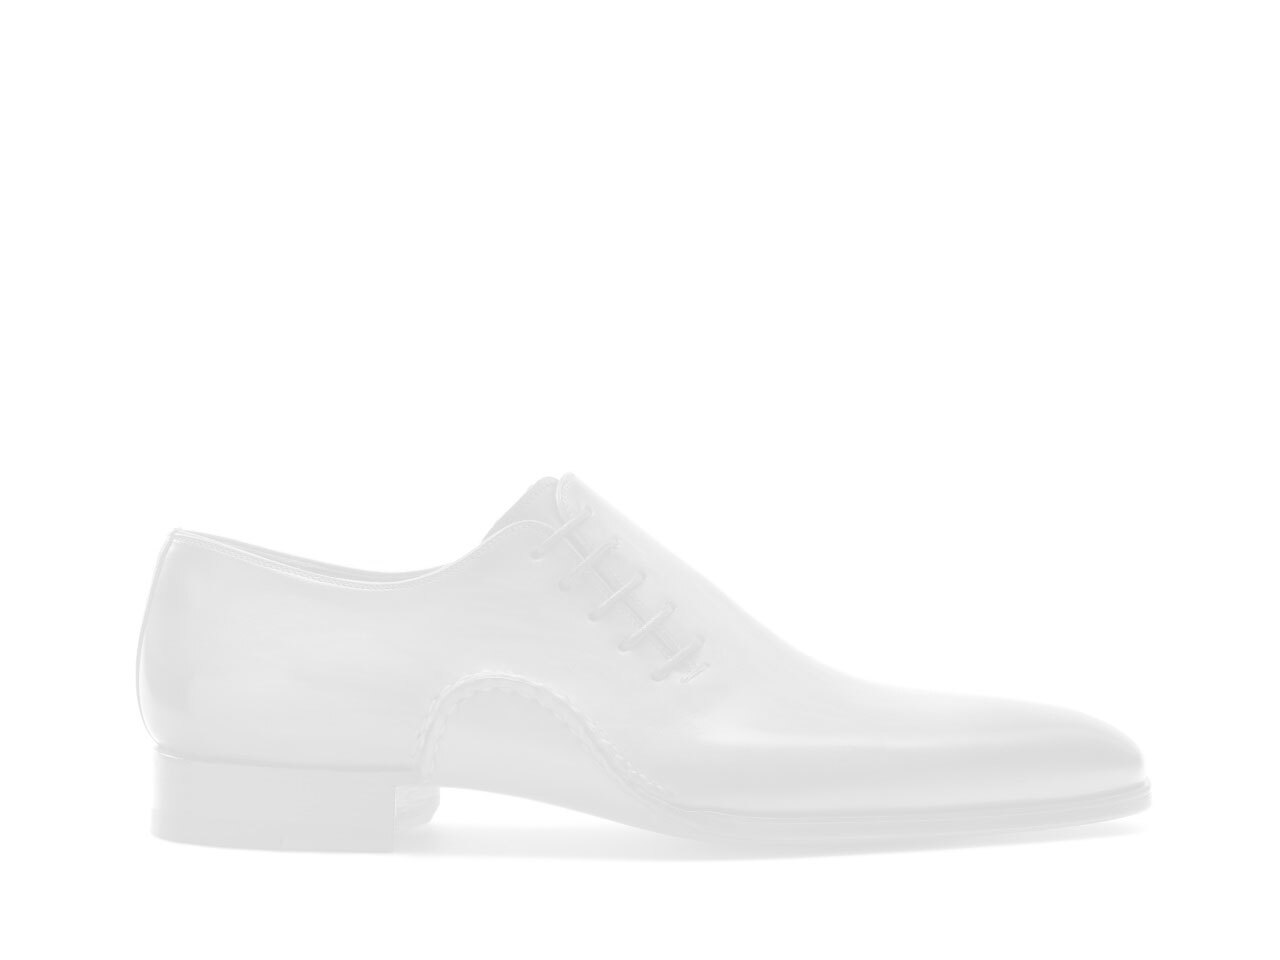 Side view of the Magnanni Magnanni X Pelotonia Men Men's Sneakers